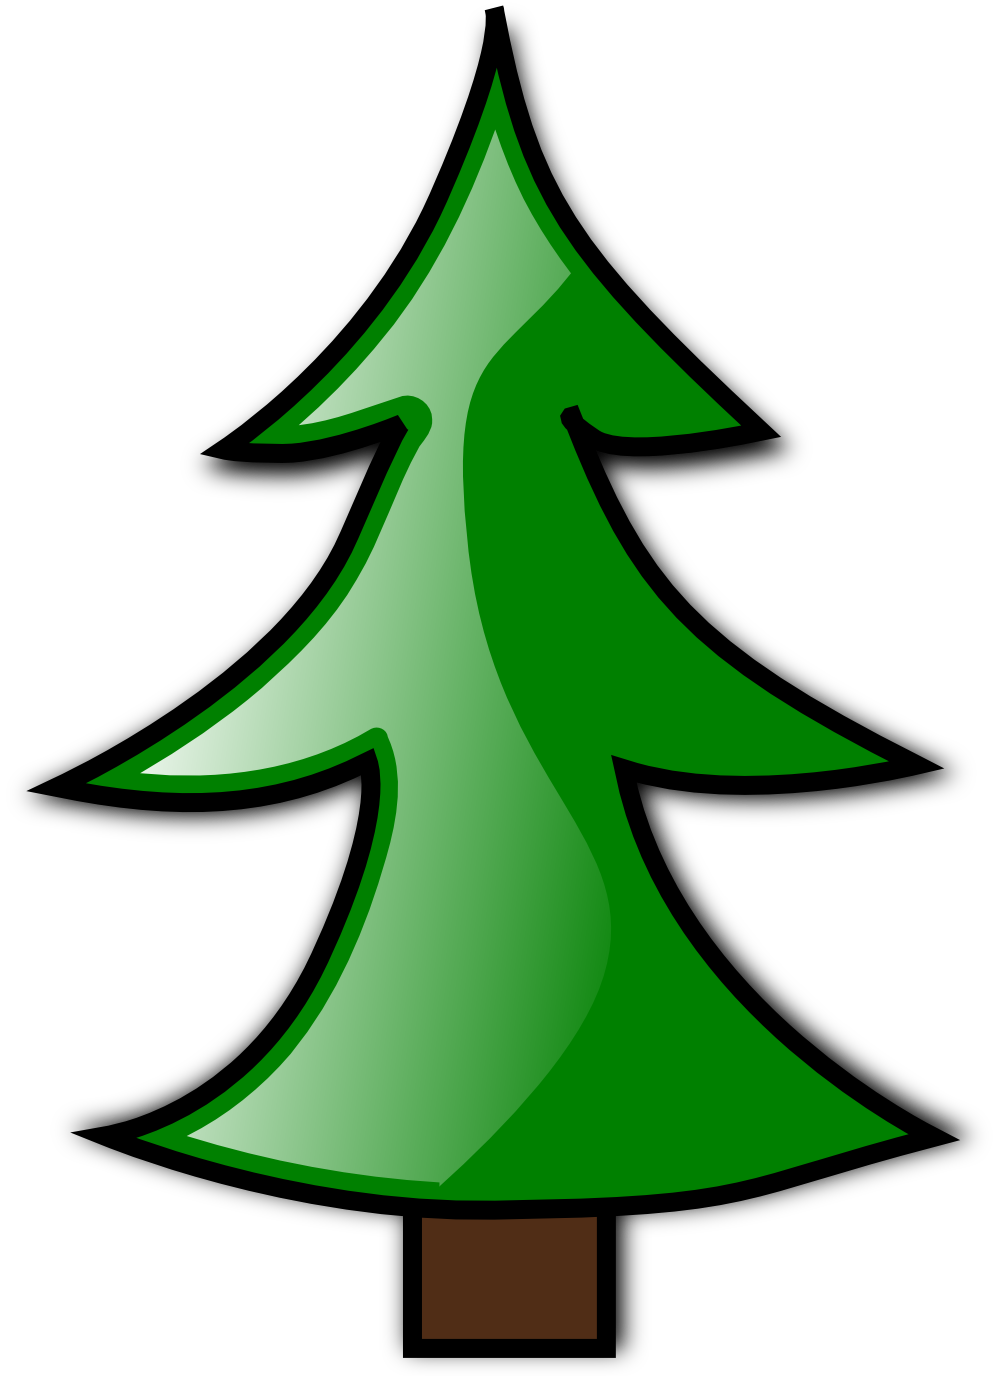 Costume clipart christmas tree. Undecorated clip art ideas